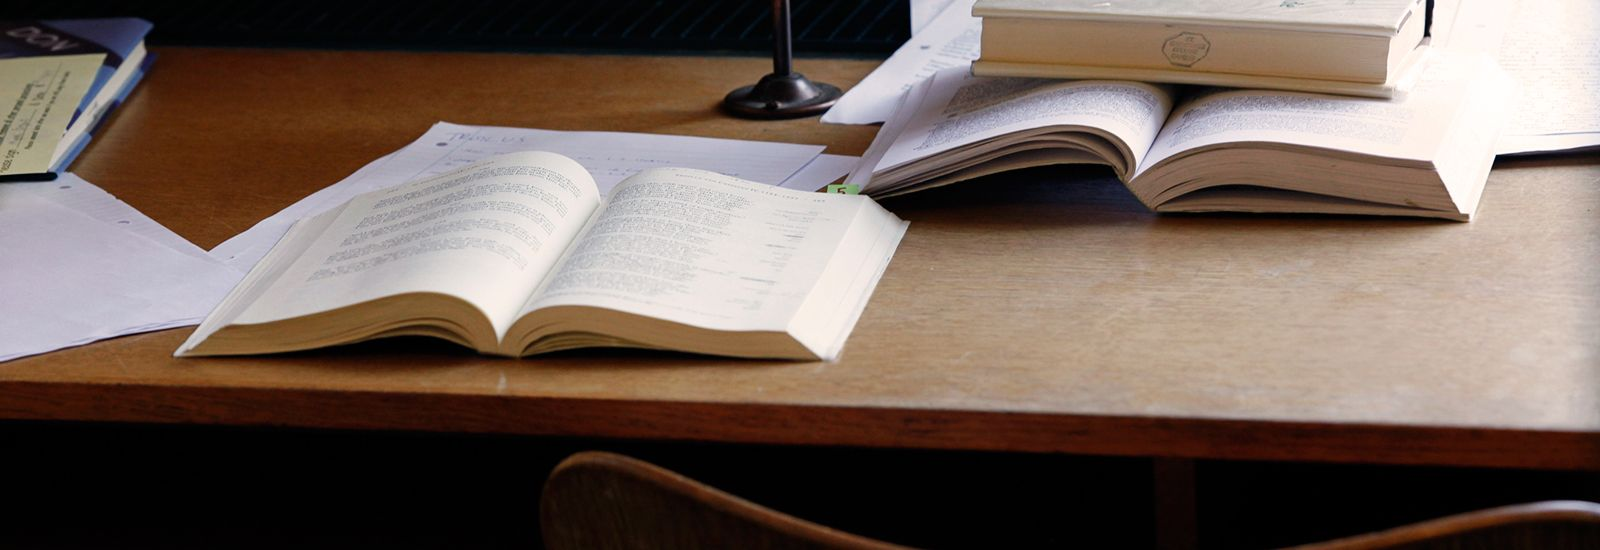 Open books on a wooden desk